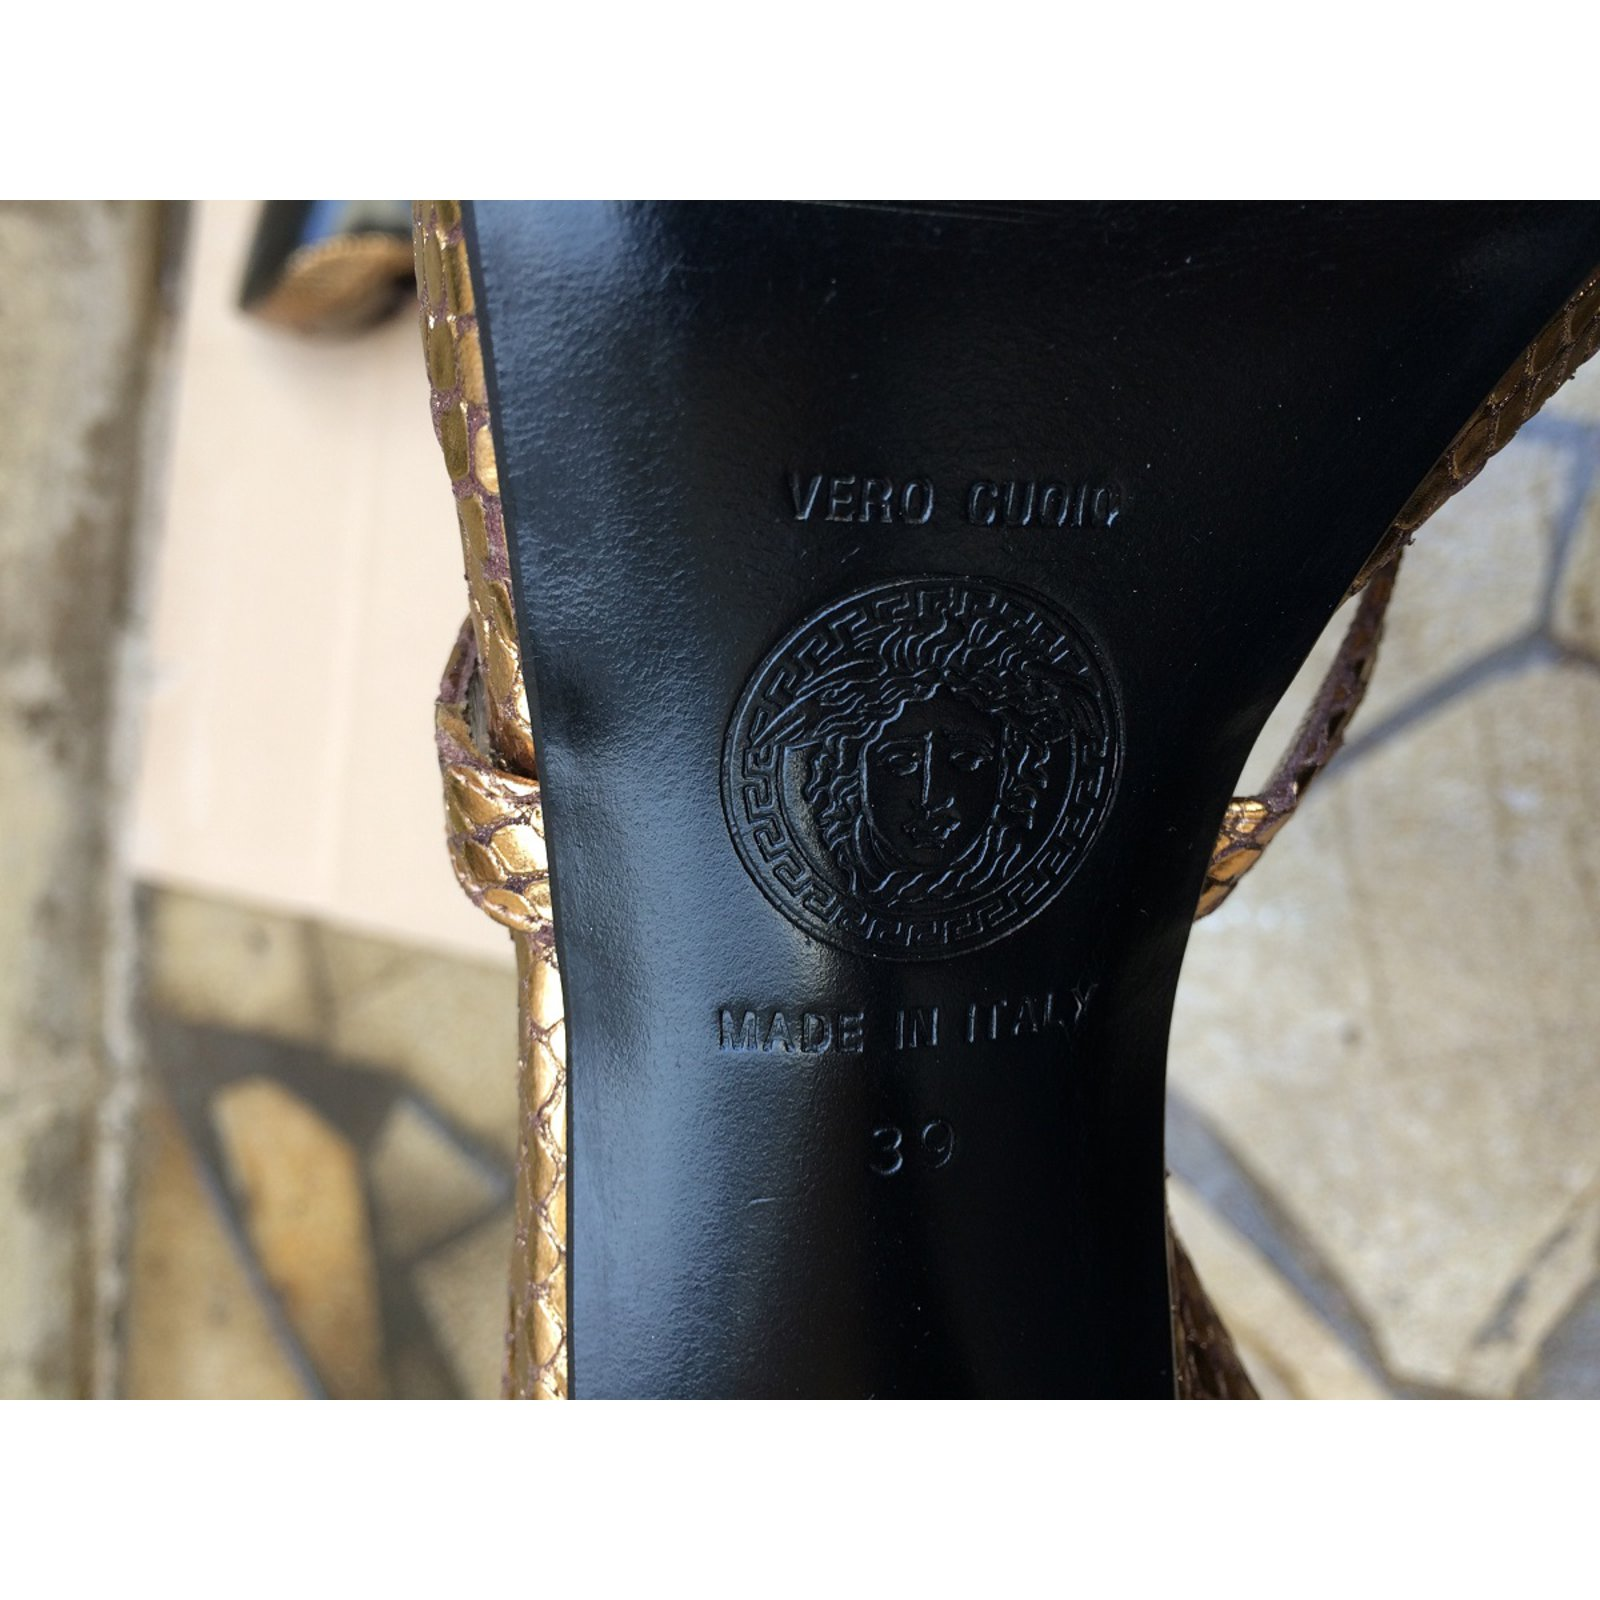 9caa5999e2d8 Facebook · Pin This. Gianni Versace Sandals Sandals Leather Golden ...